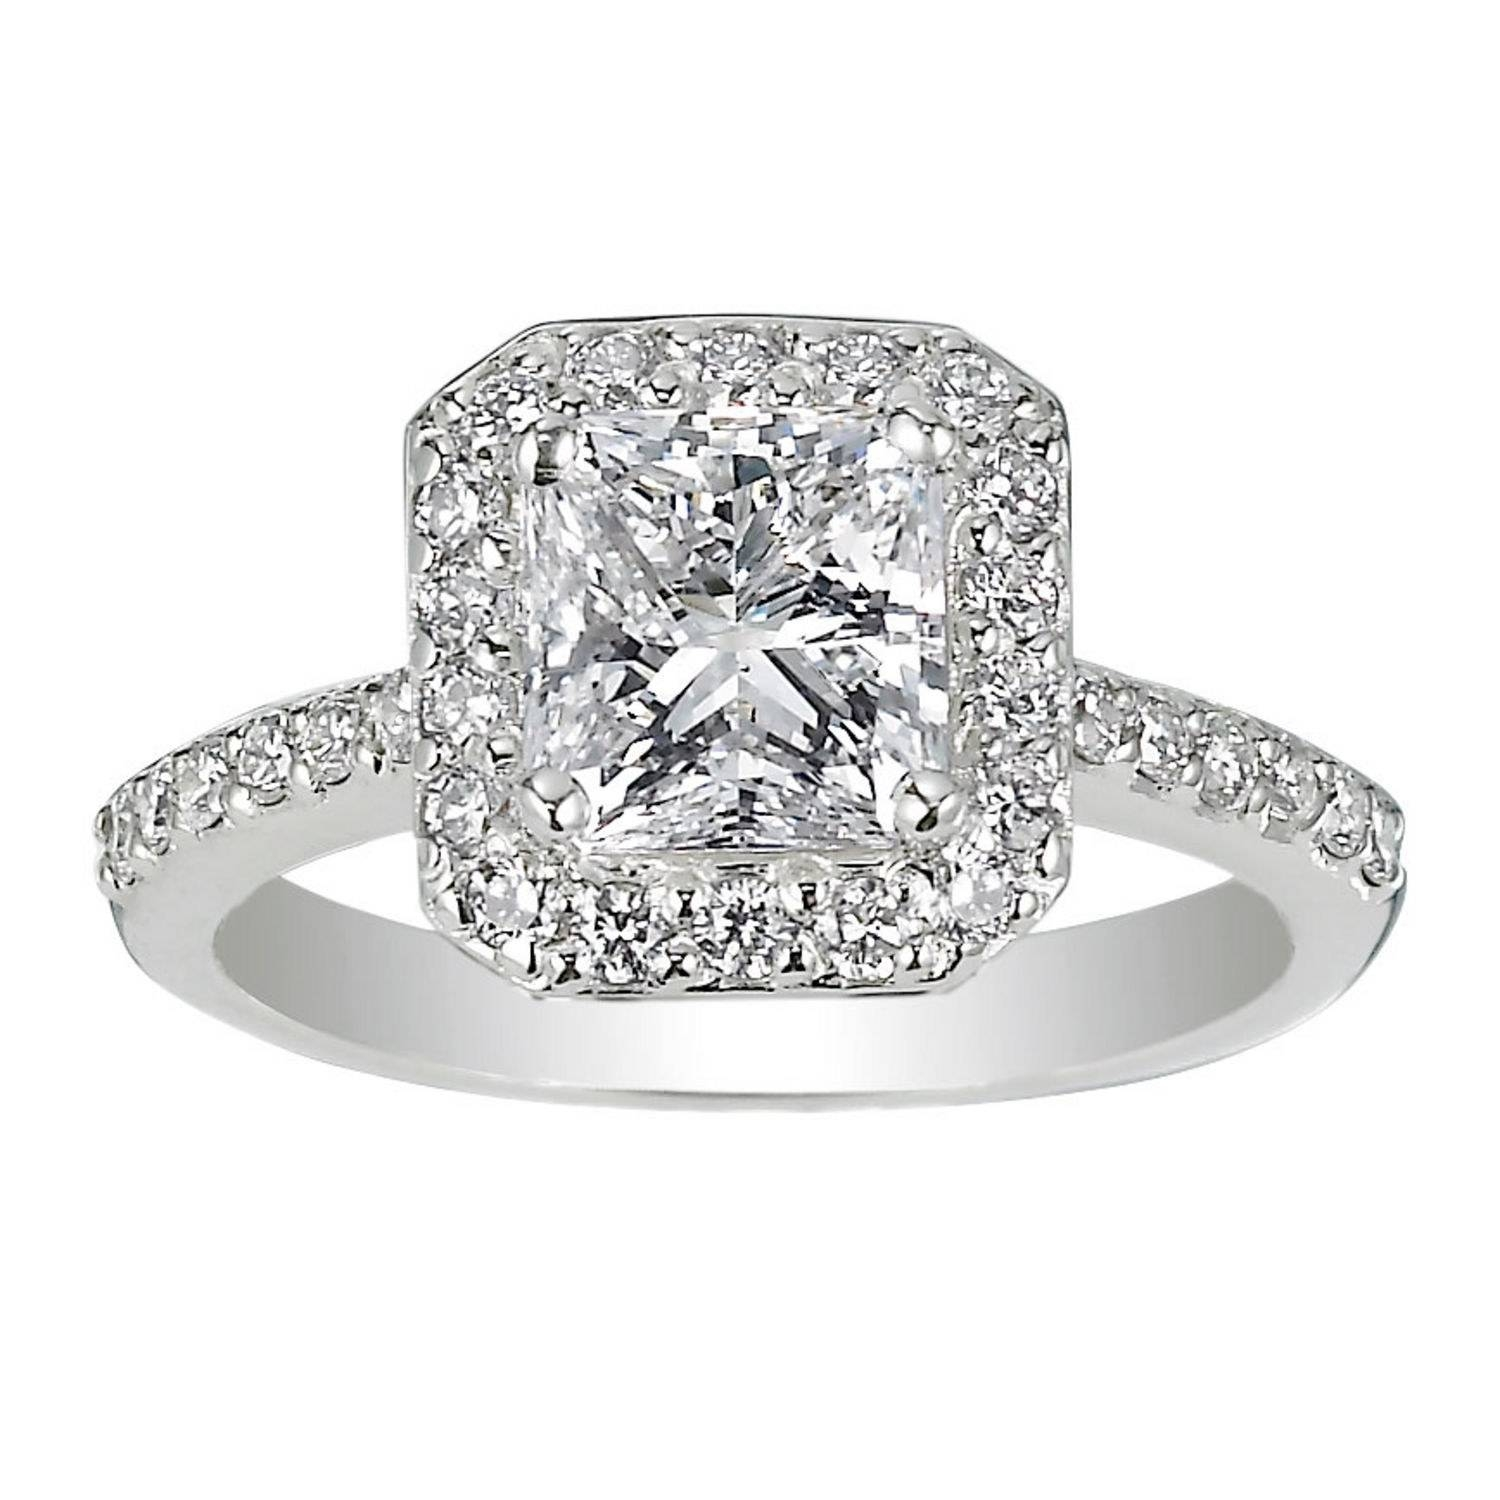 62 Diamond Engagement Rings Under $5,000 | Glamour Throughout Women Diamond Wedding Rings (View 3 of 15)